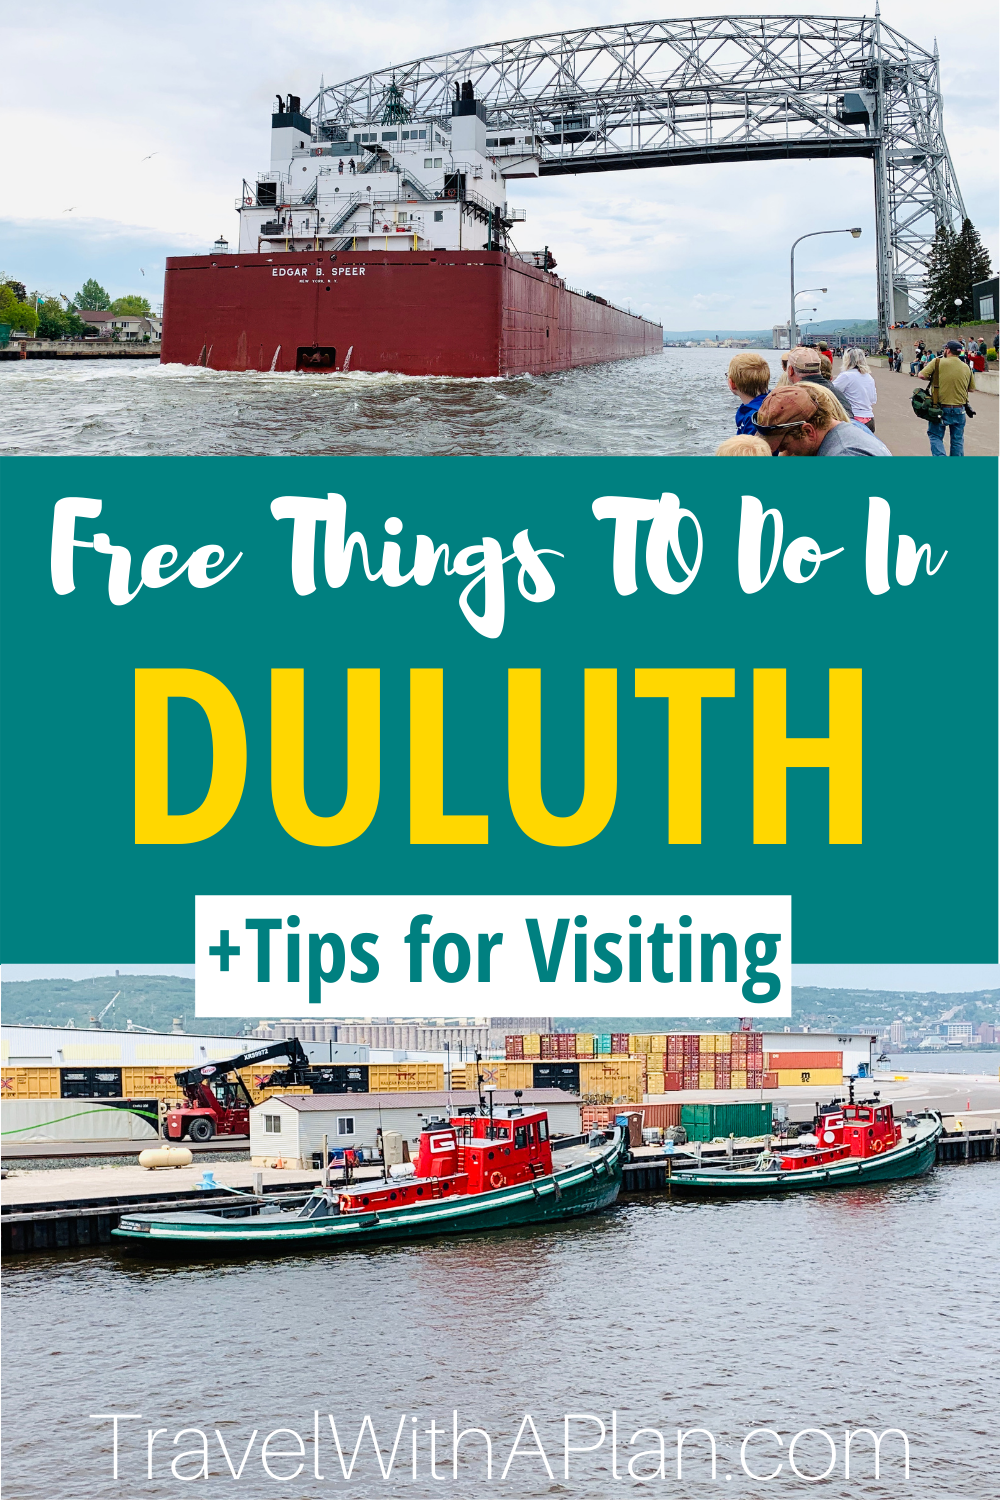 Click here to find our our favorite and best things to do in Duluth that are free!  If you're taking a family getaway to Duluth, MN, be sure to check out this list and get tips for your visit!  #Duluth #Minnesota #midwesttravel #familytravel #Duluthattractions #NorthShore